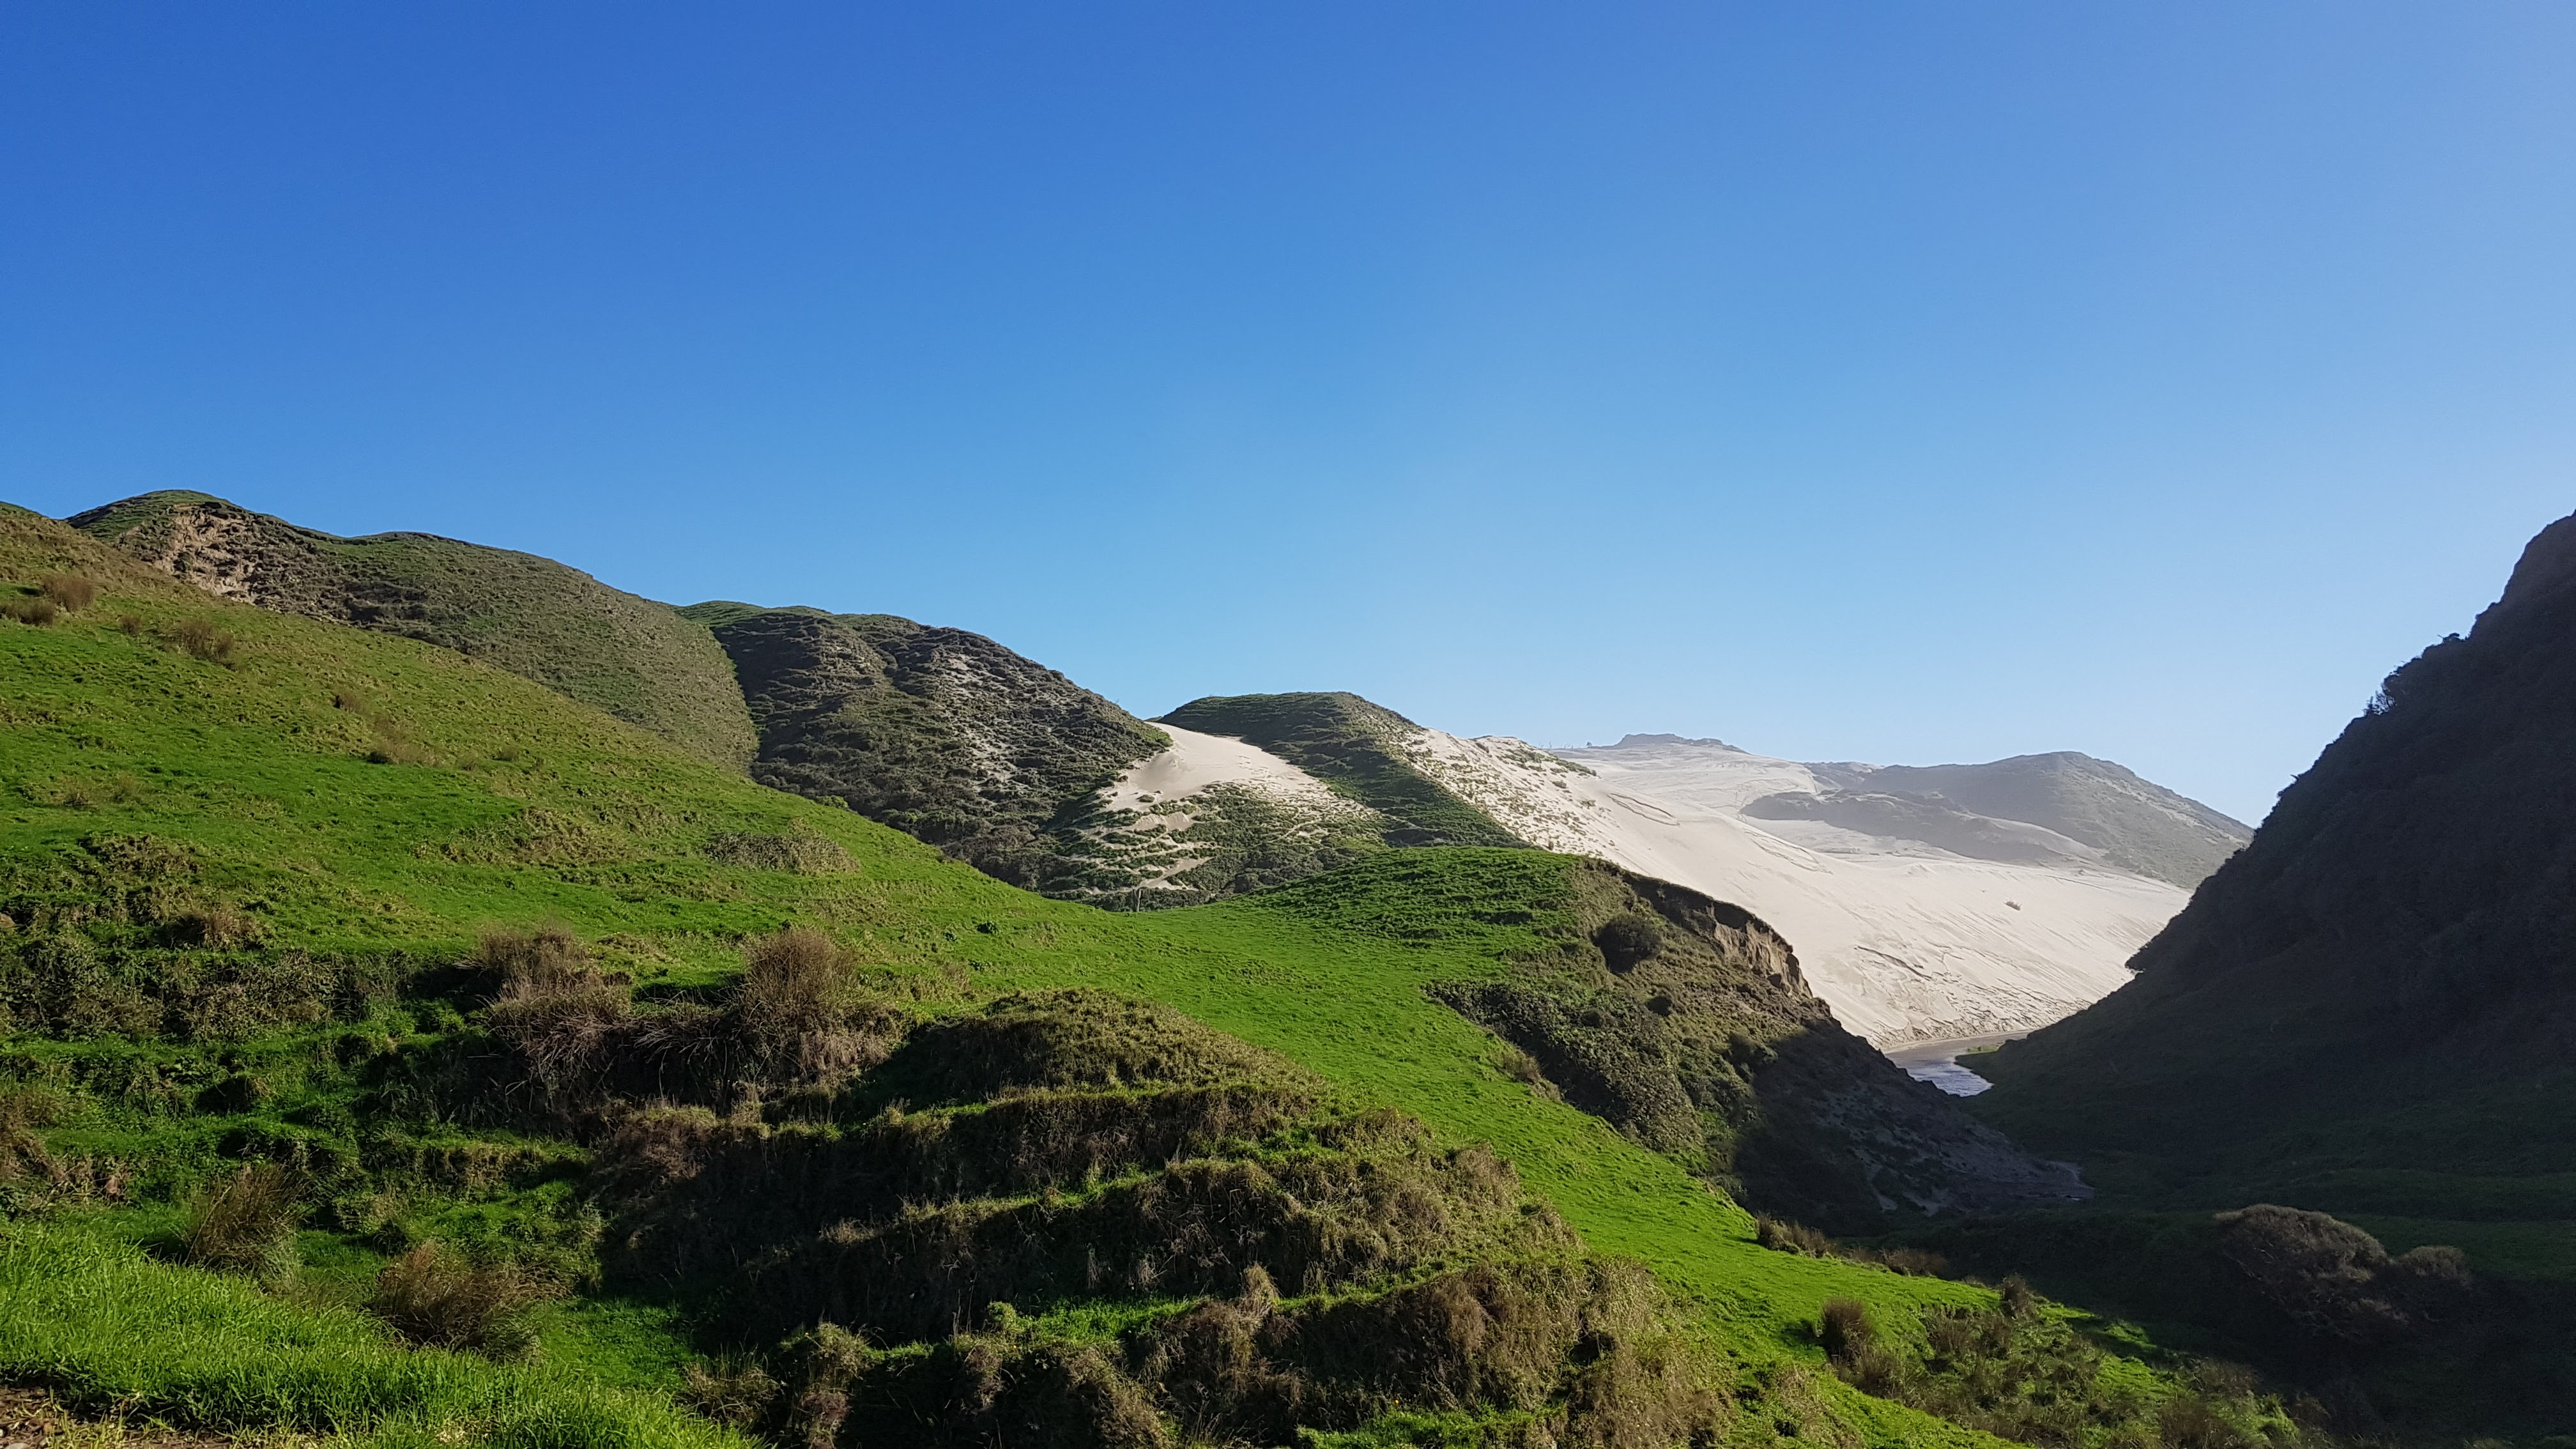 First glimpse of the enormous West coast sand dunes